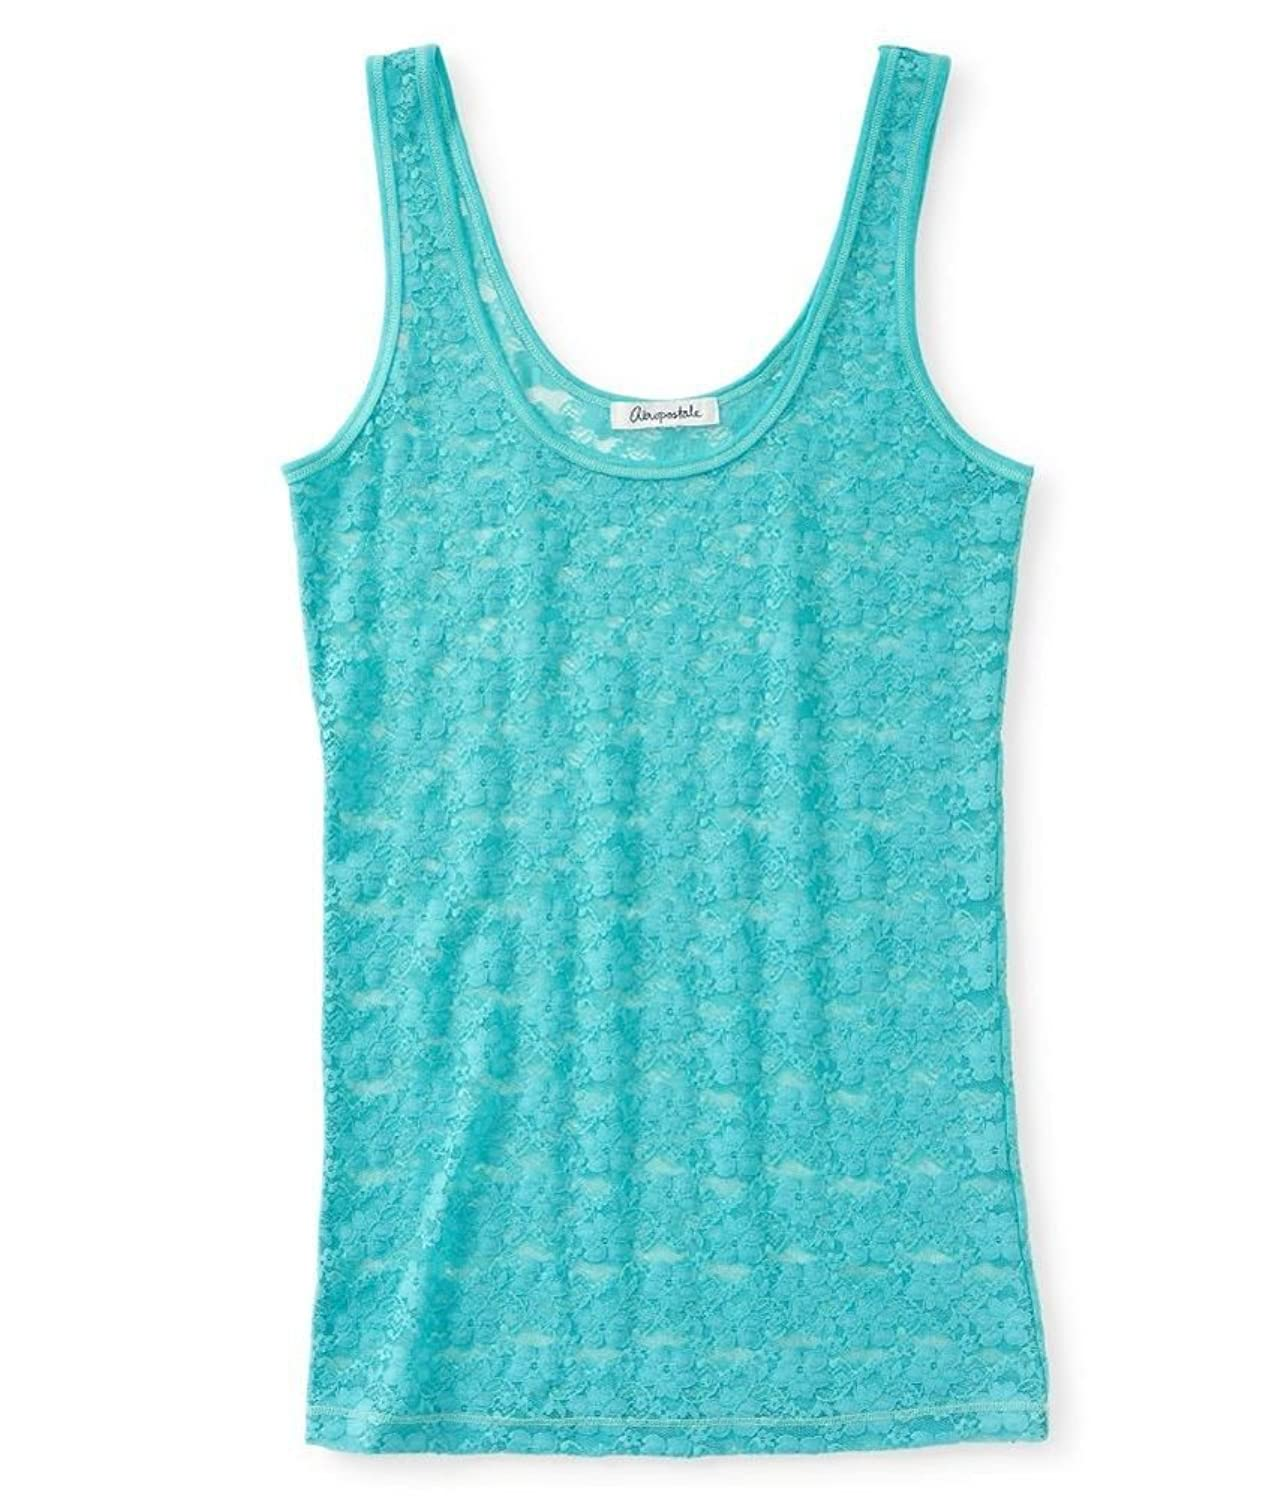 Aeropostale Womens Sheer Lacey Tank Top